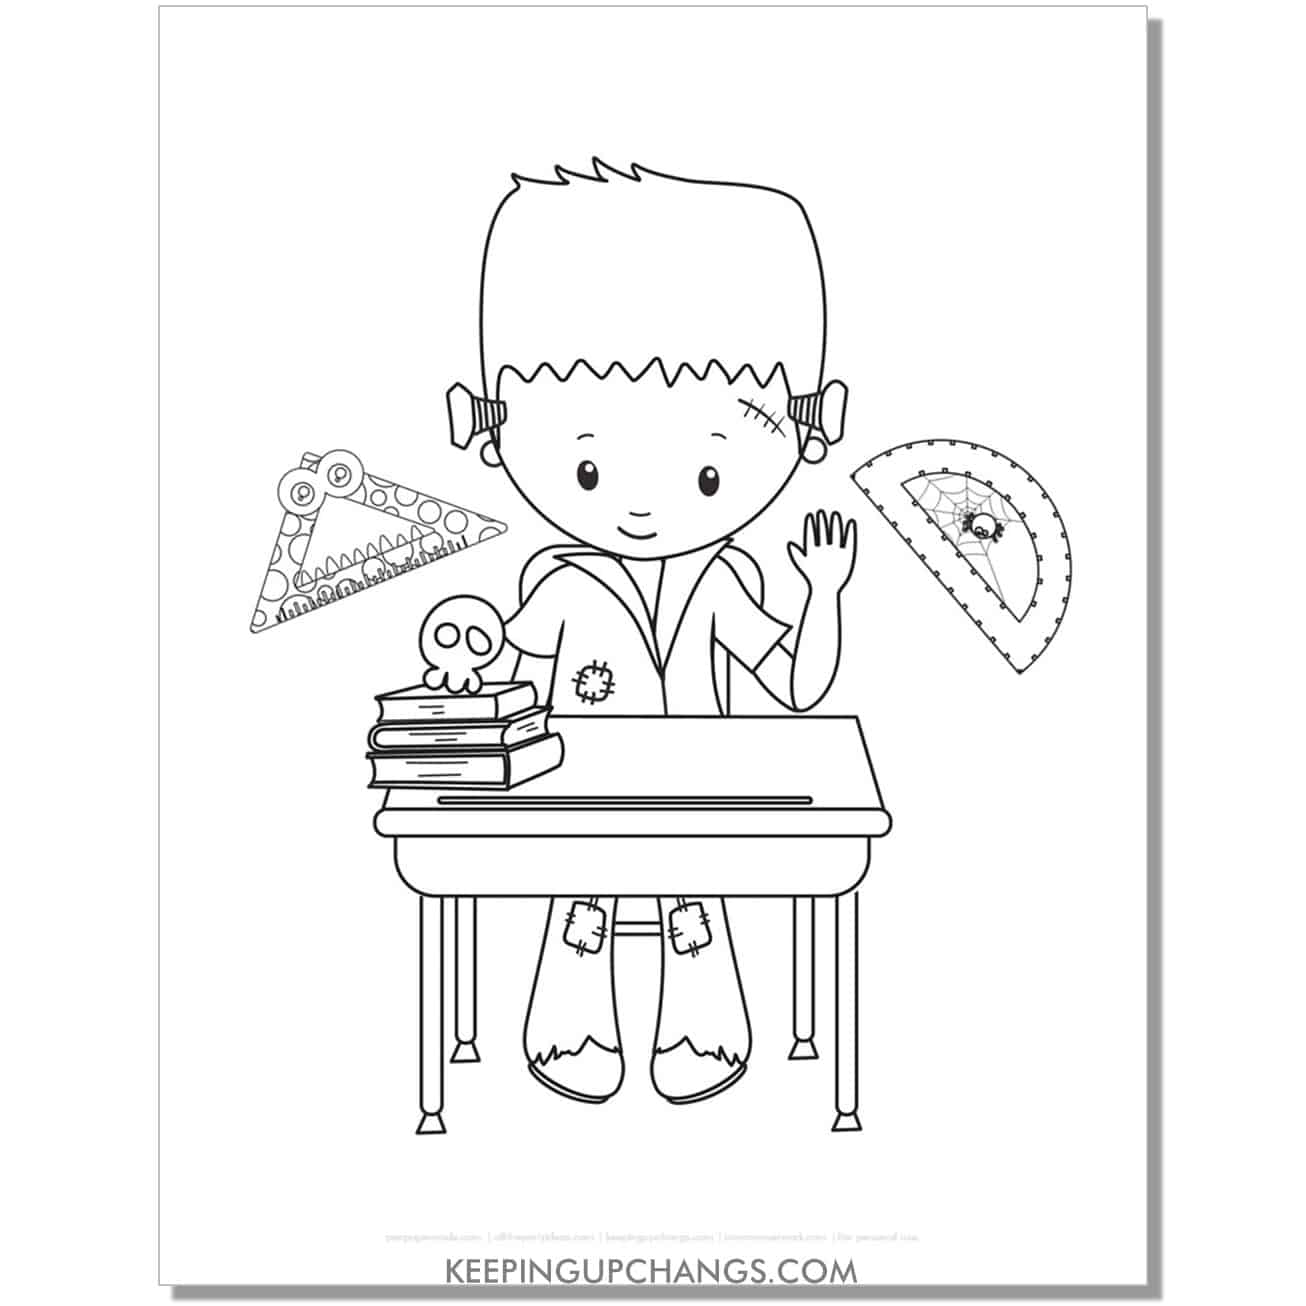 free frankenstein boy school coloring page with protractor and ruler.